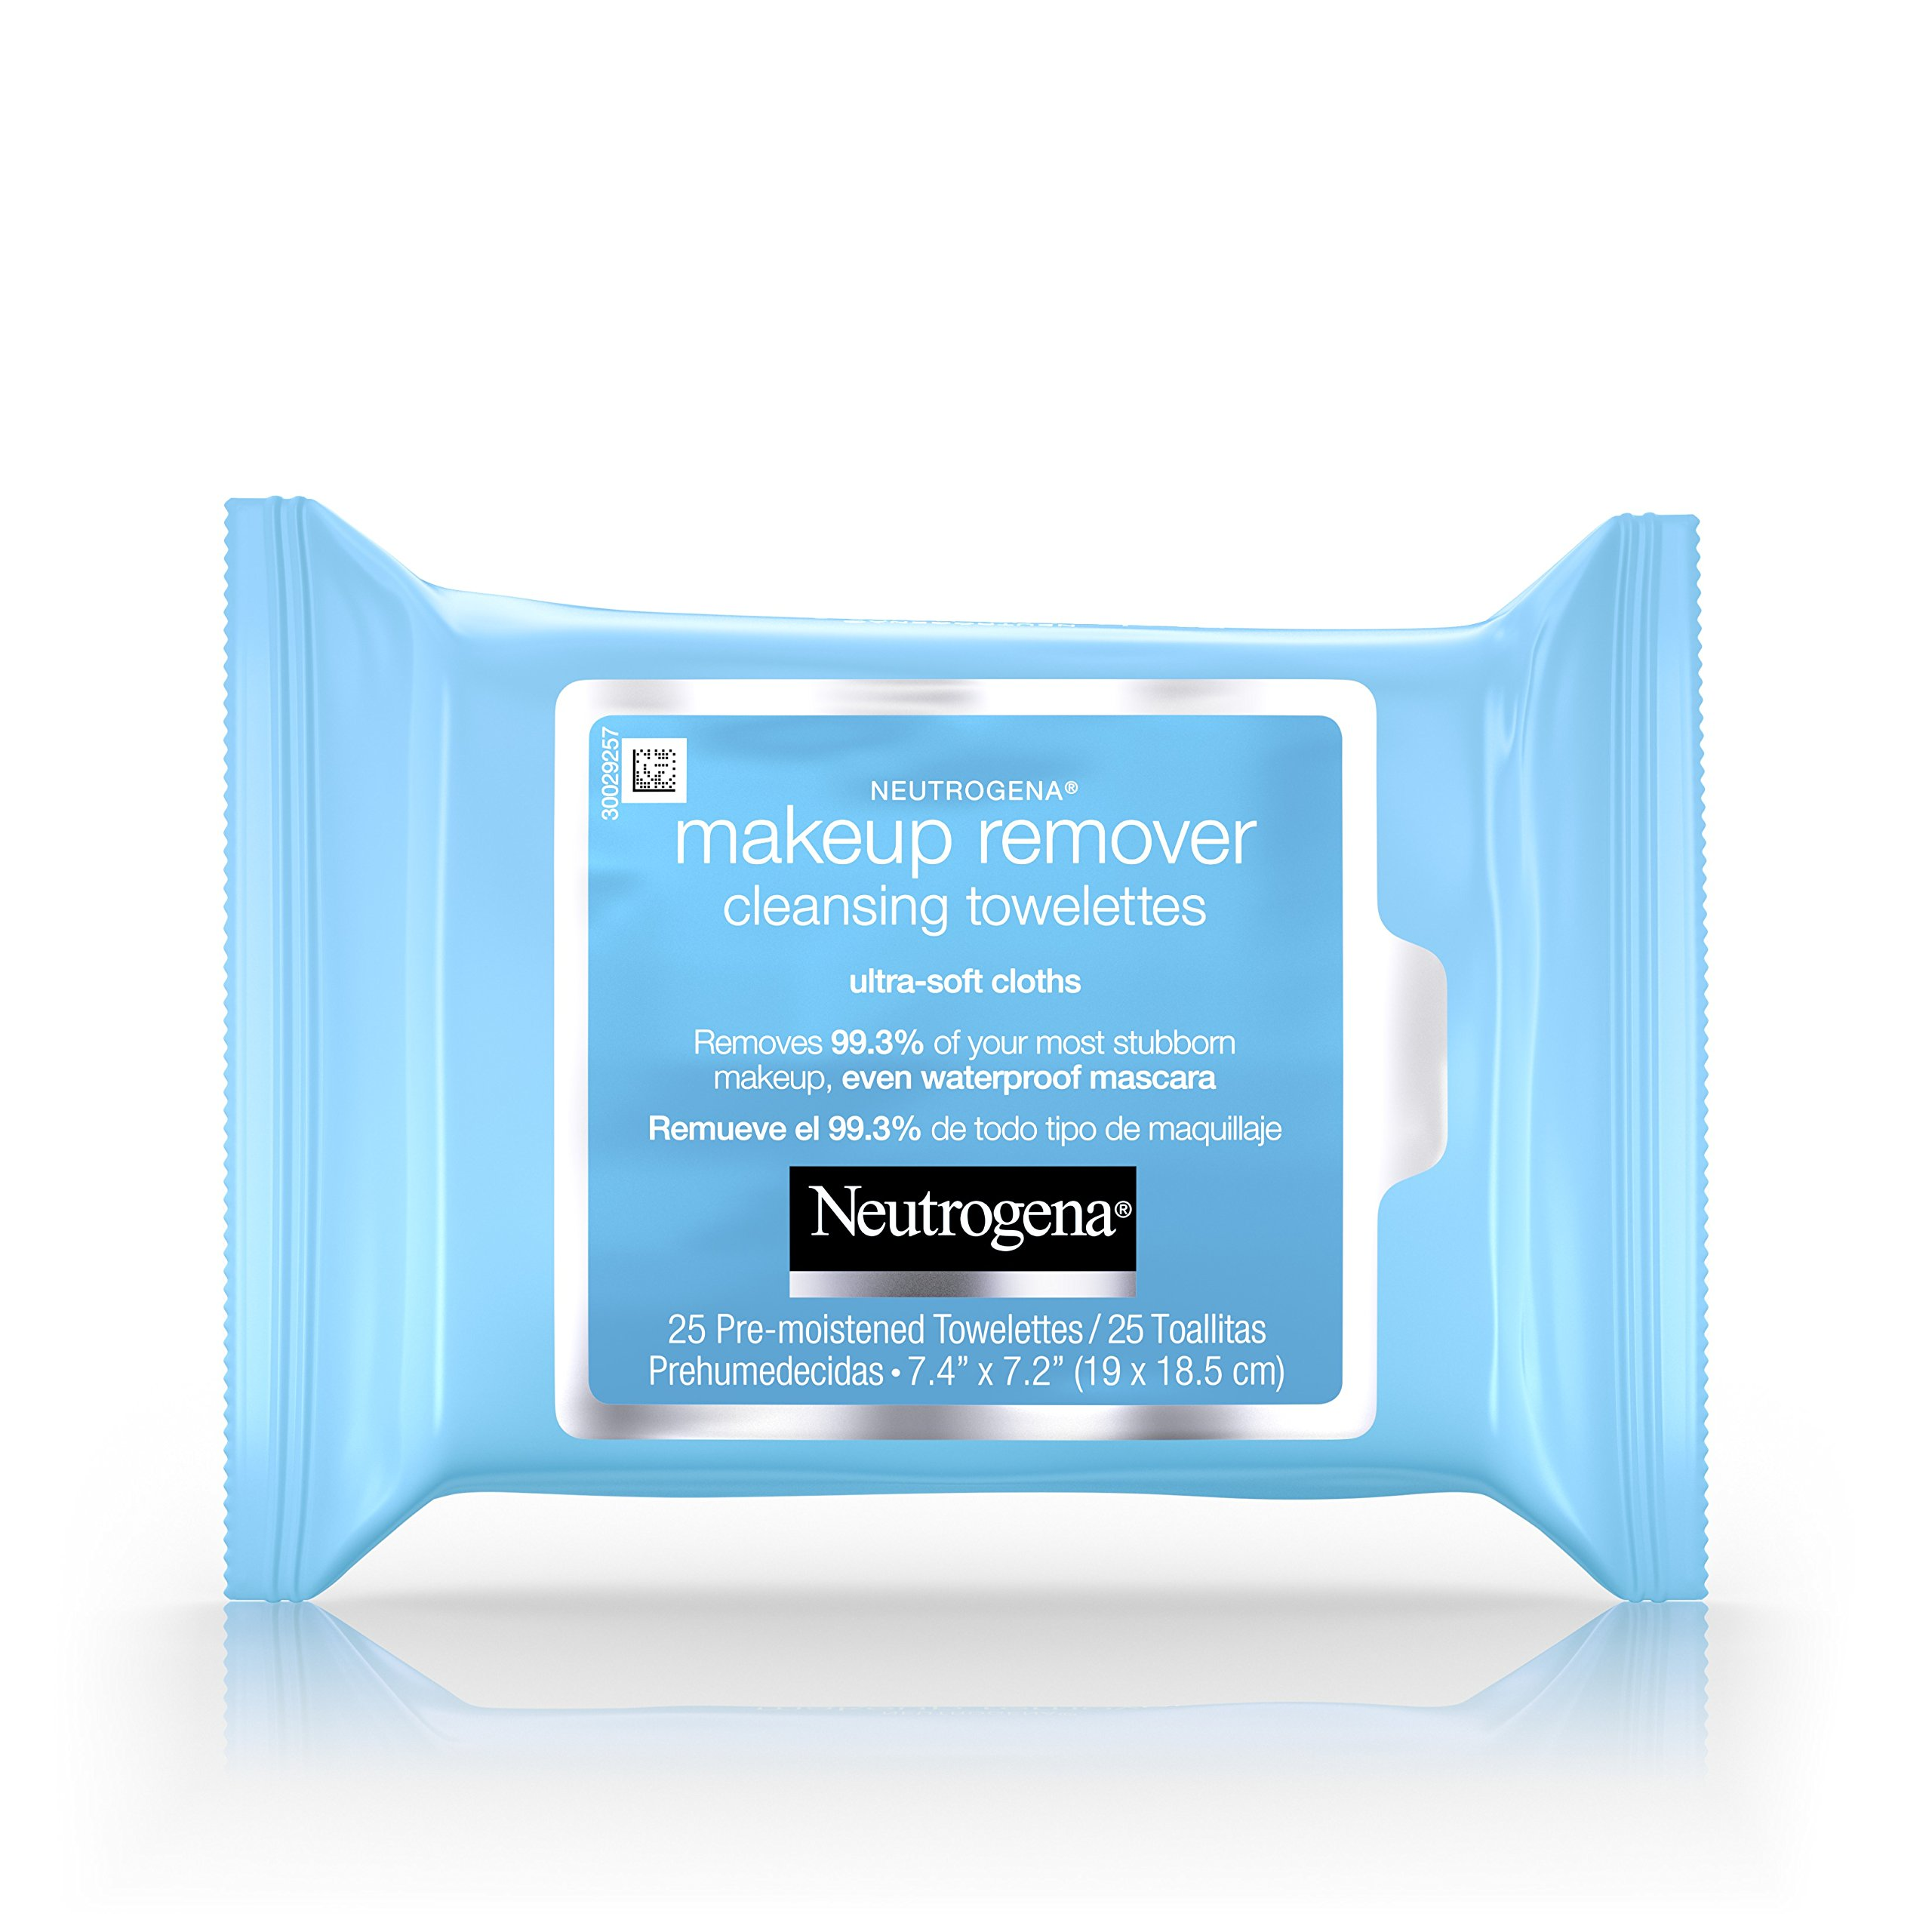 Neutrogena Cleansing Makeup Remover Facial Wipes, Waterproof Mascara Remover Refill Pack, 25 Count (